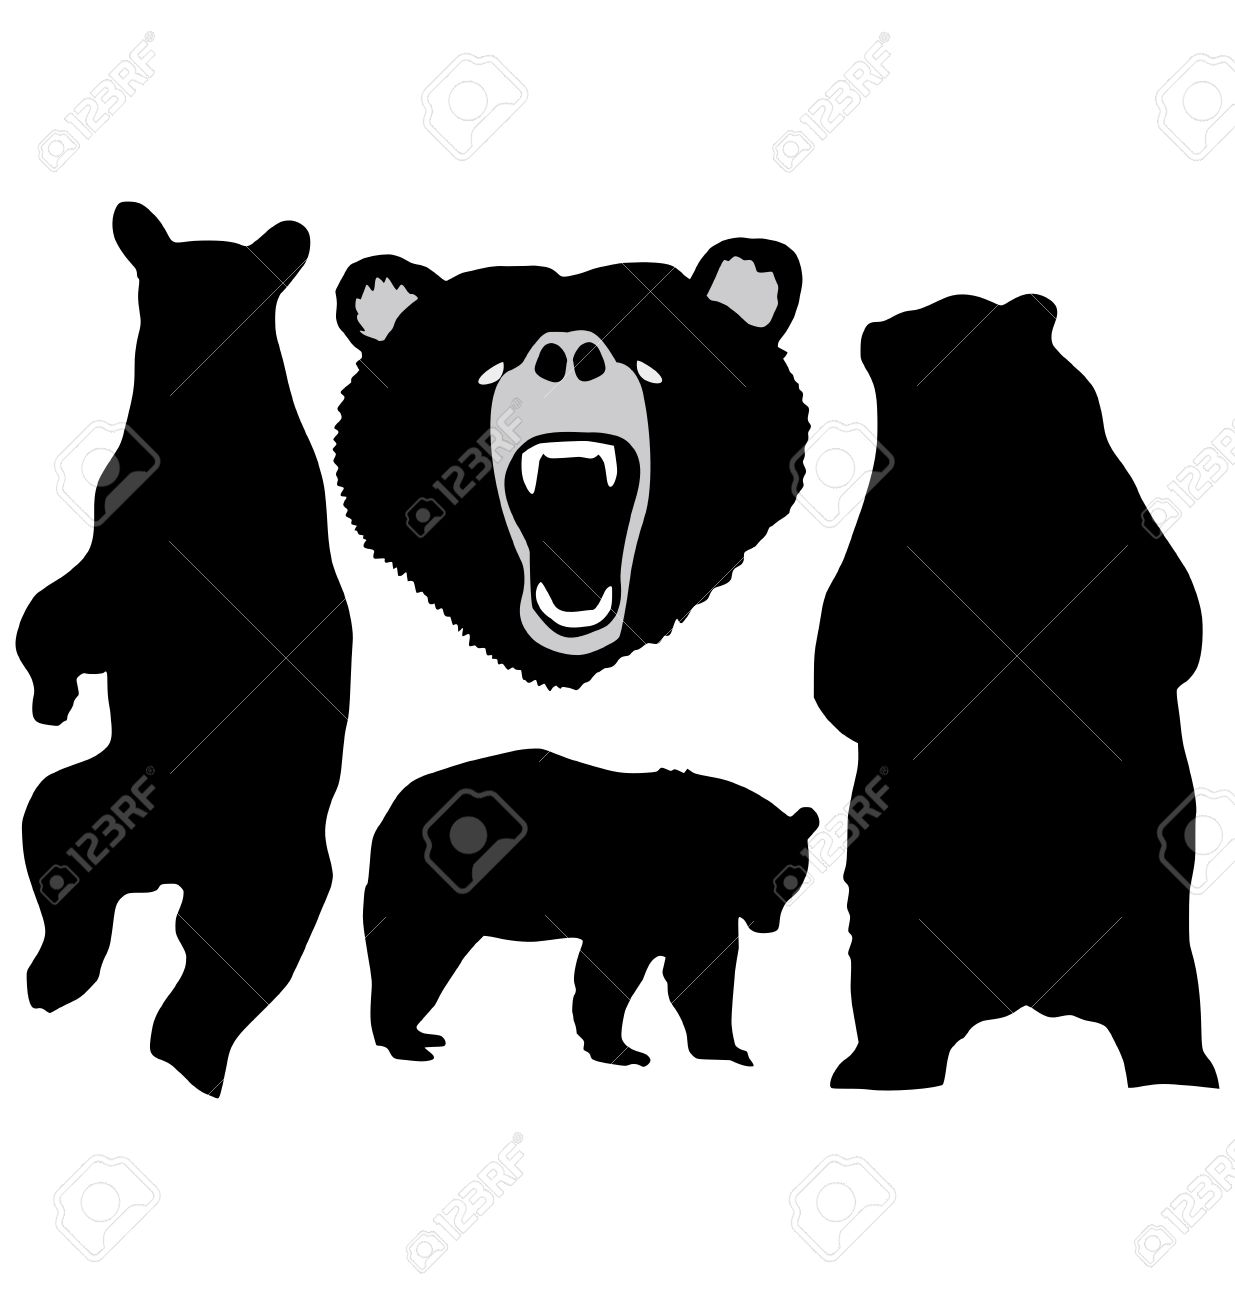 The set of the silhouettes of the bear Stock Vector - 11376066